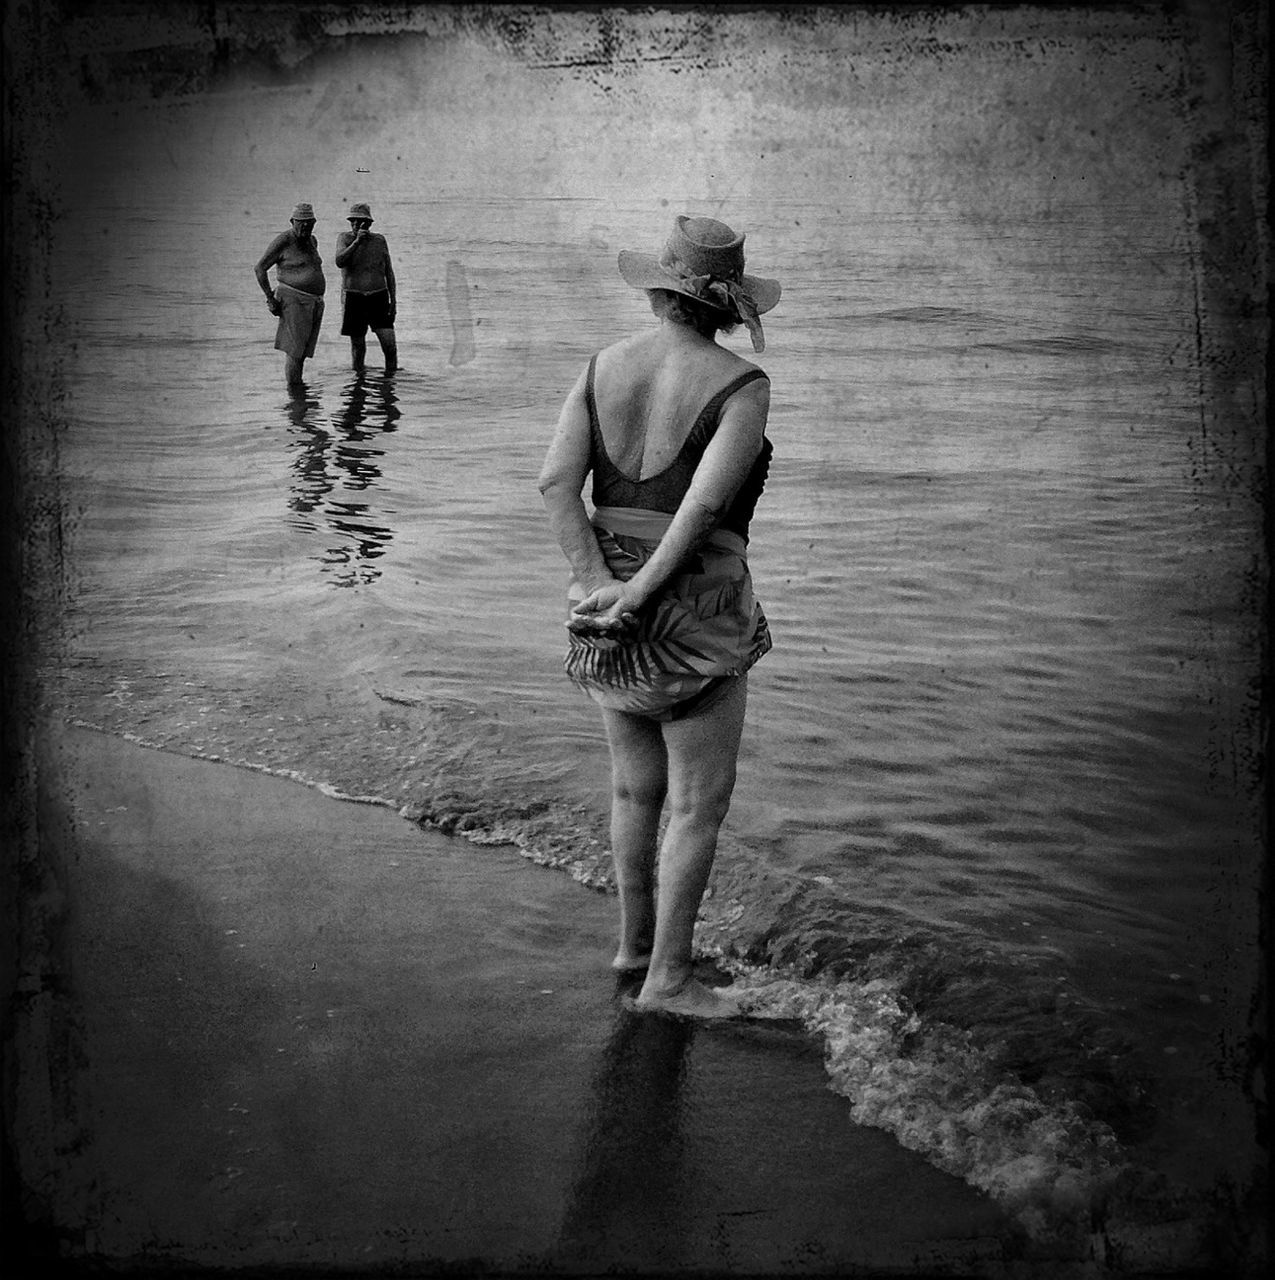 water, real people, full length, rear view, walking, standing, outdoors, men, ankle deep in water, day, two people, lake, togetherness, nature, adult, people